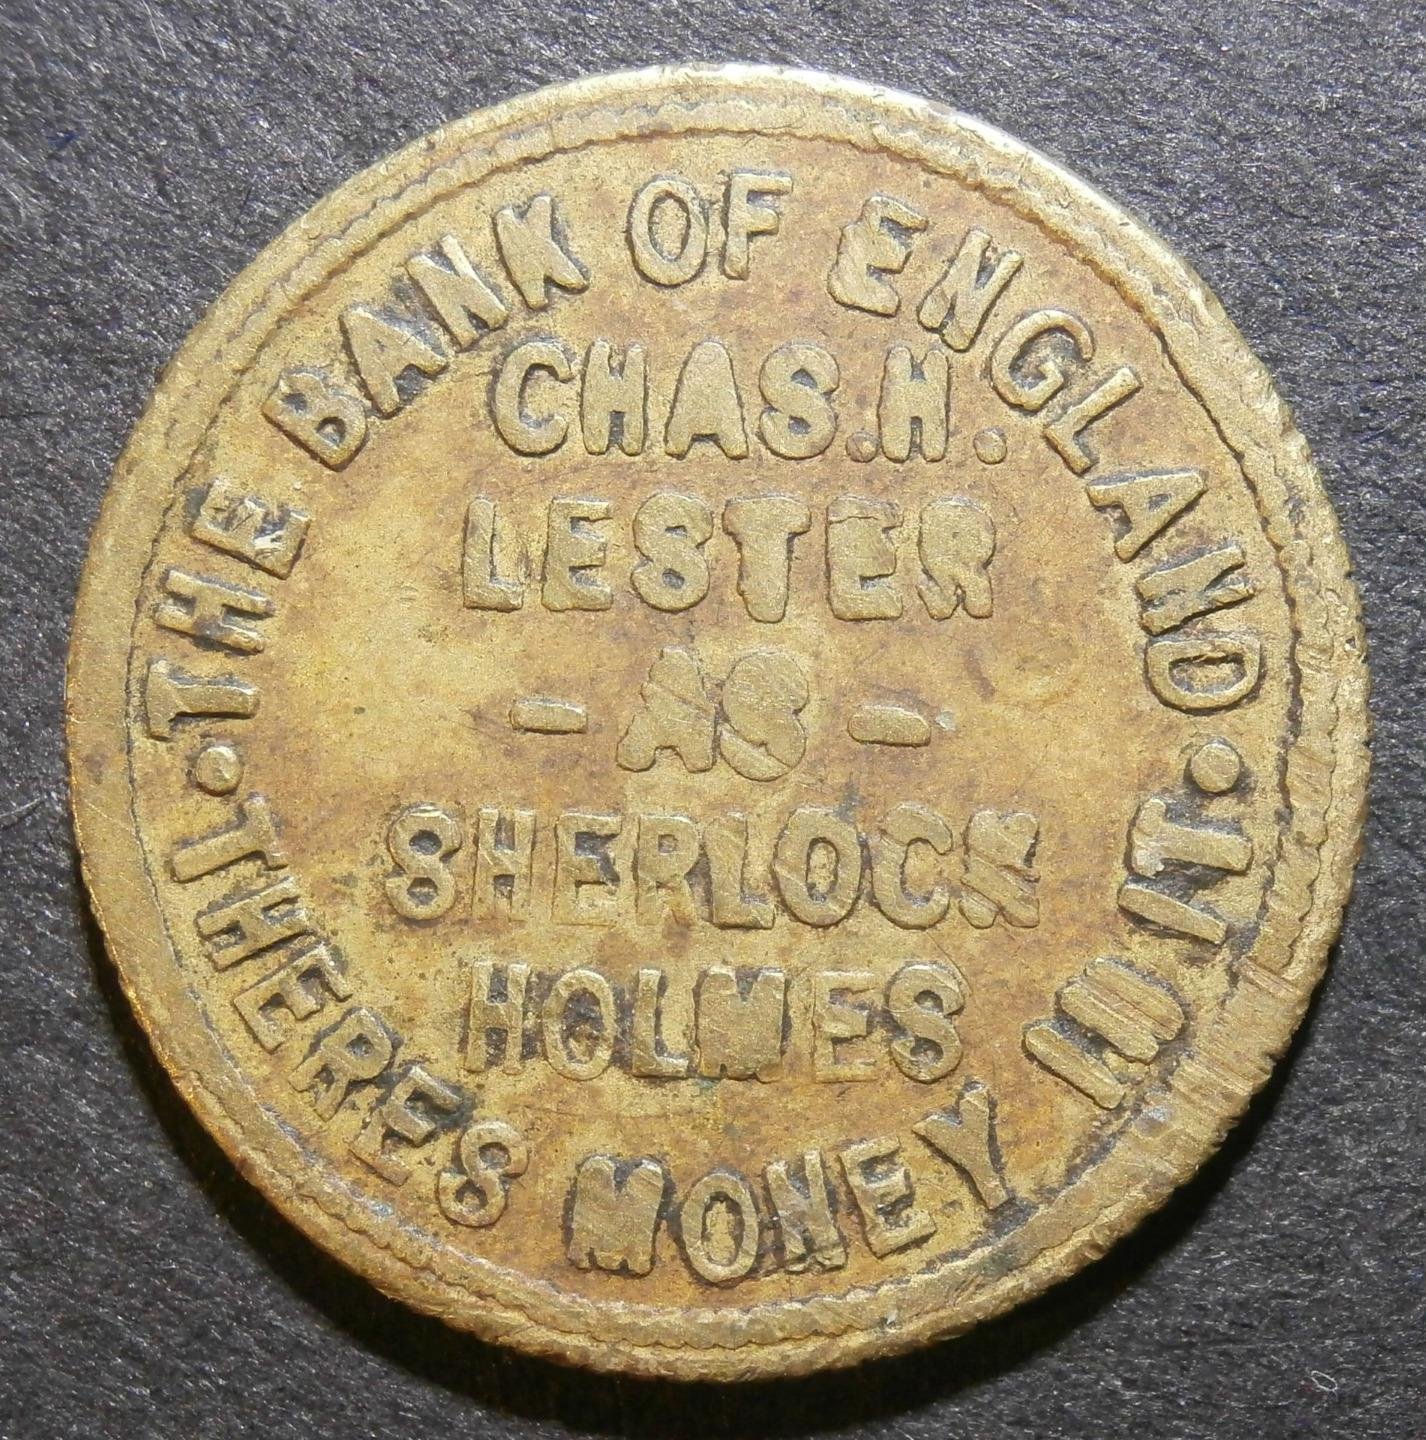 A Sherlock Holmes Token… From Wales… From 1915